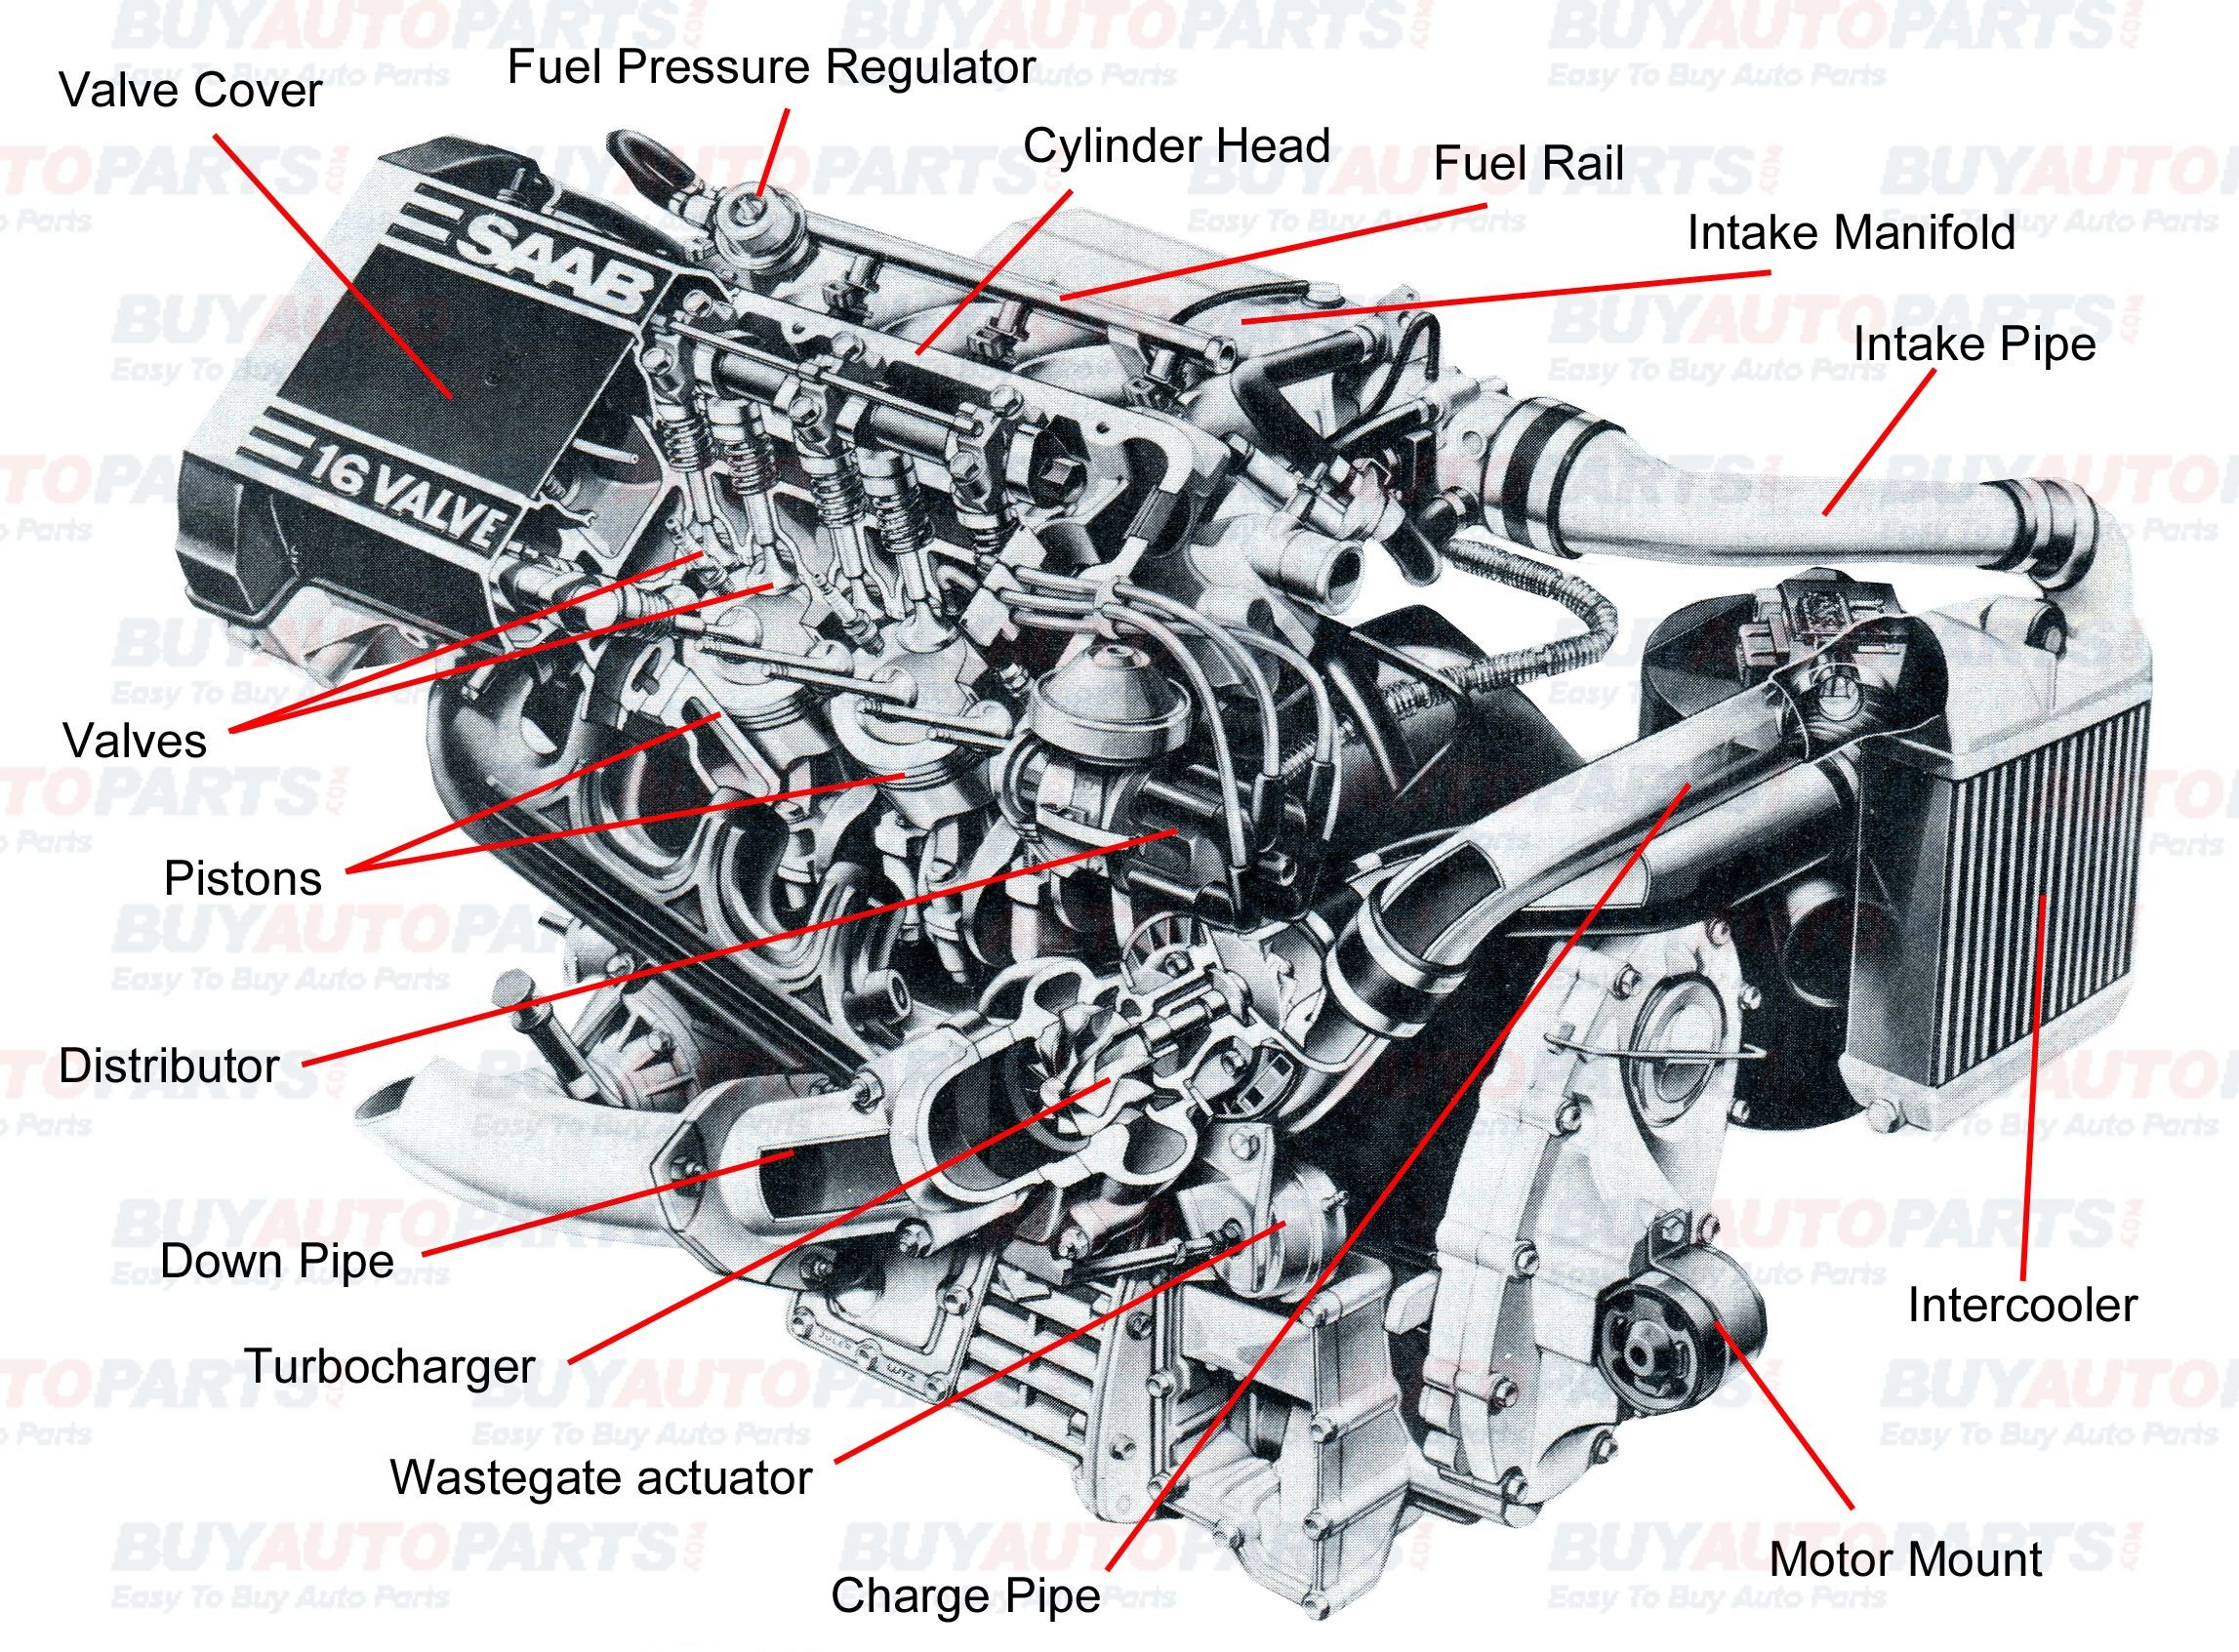 Diagram Of Car Part All Internal Bustion Engines Have the Same Basic Ponents the Of Diagram Of Car Part